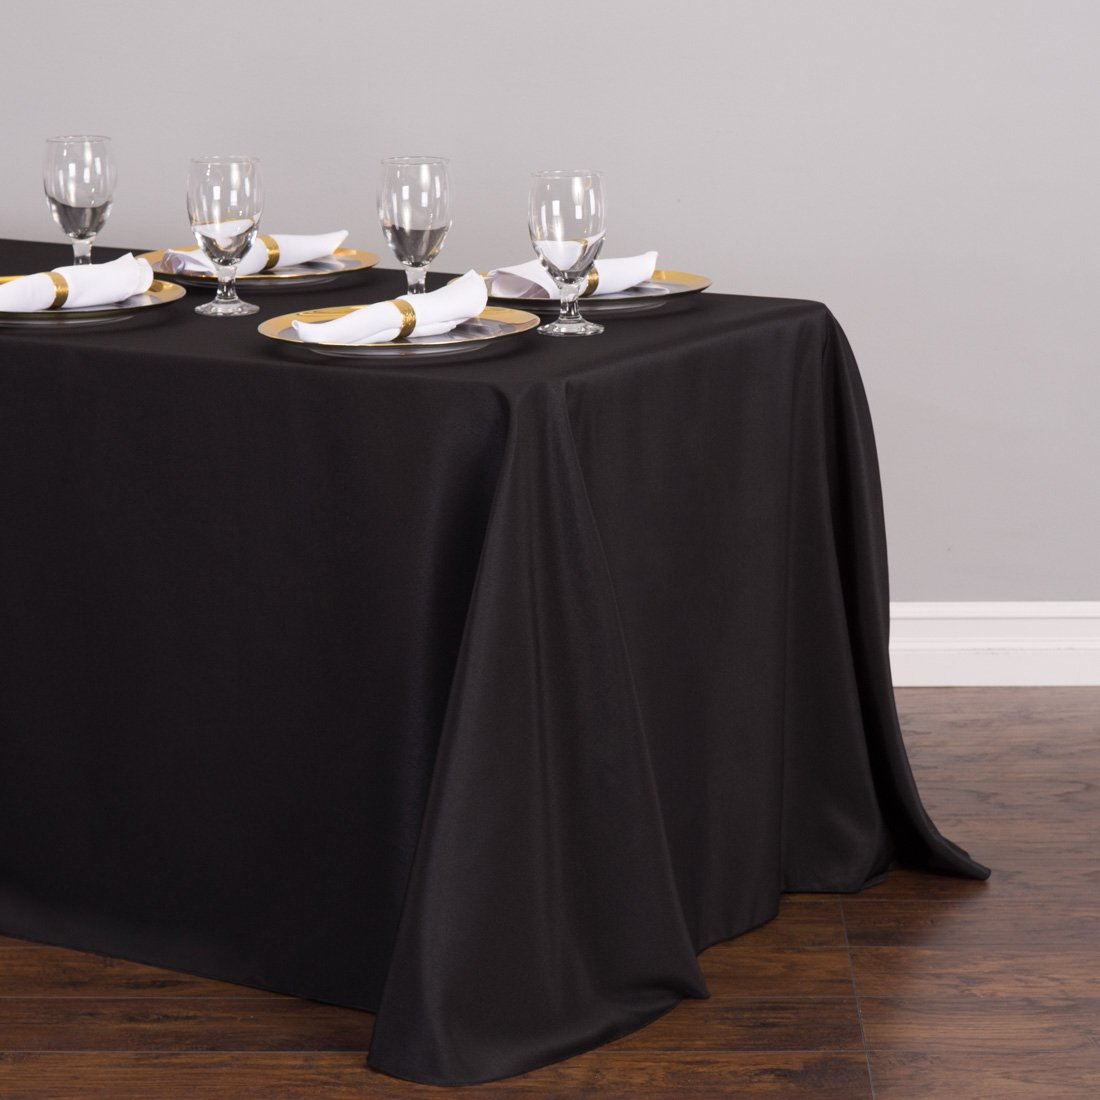 LinenTablecloth 90 x 132-Inch Rectangular Polyester Tablecloth with rounded corners Black by LinenTablecloth (Image #2)